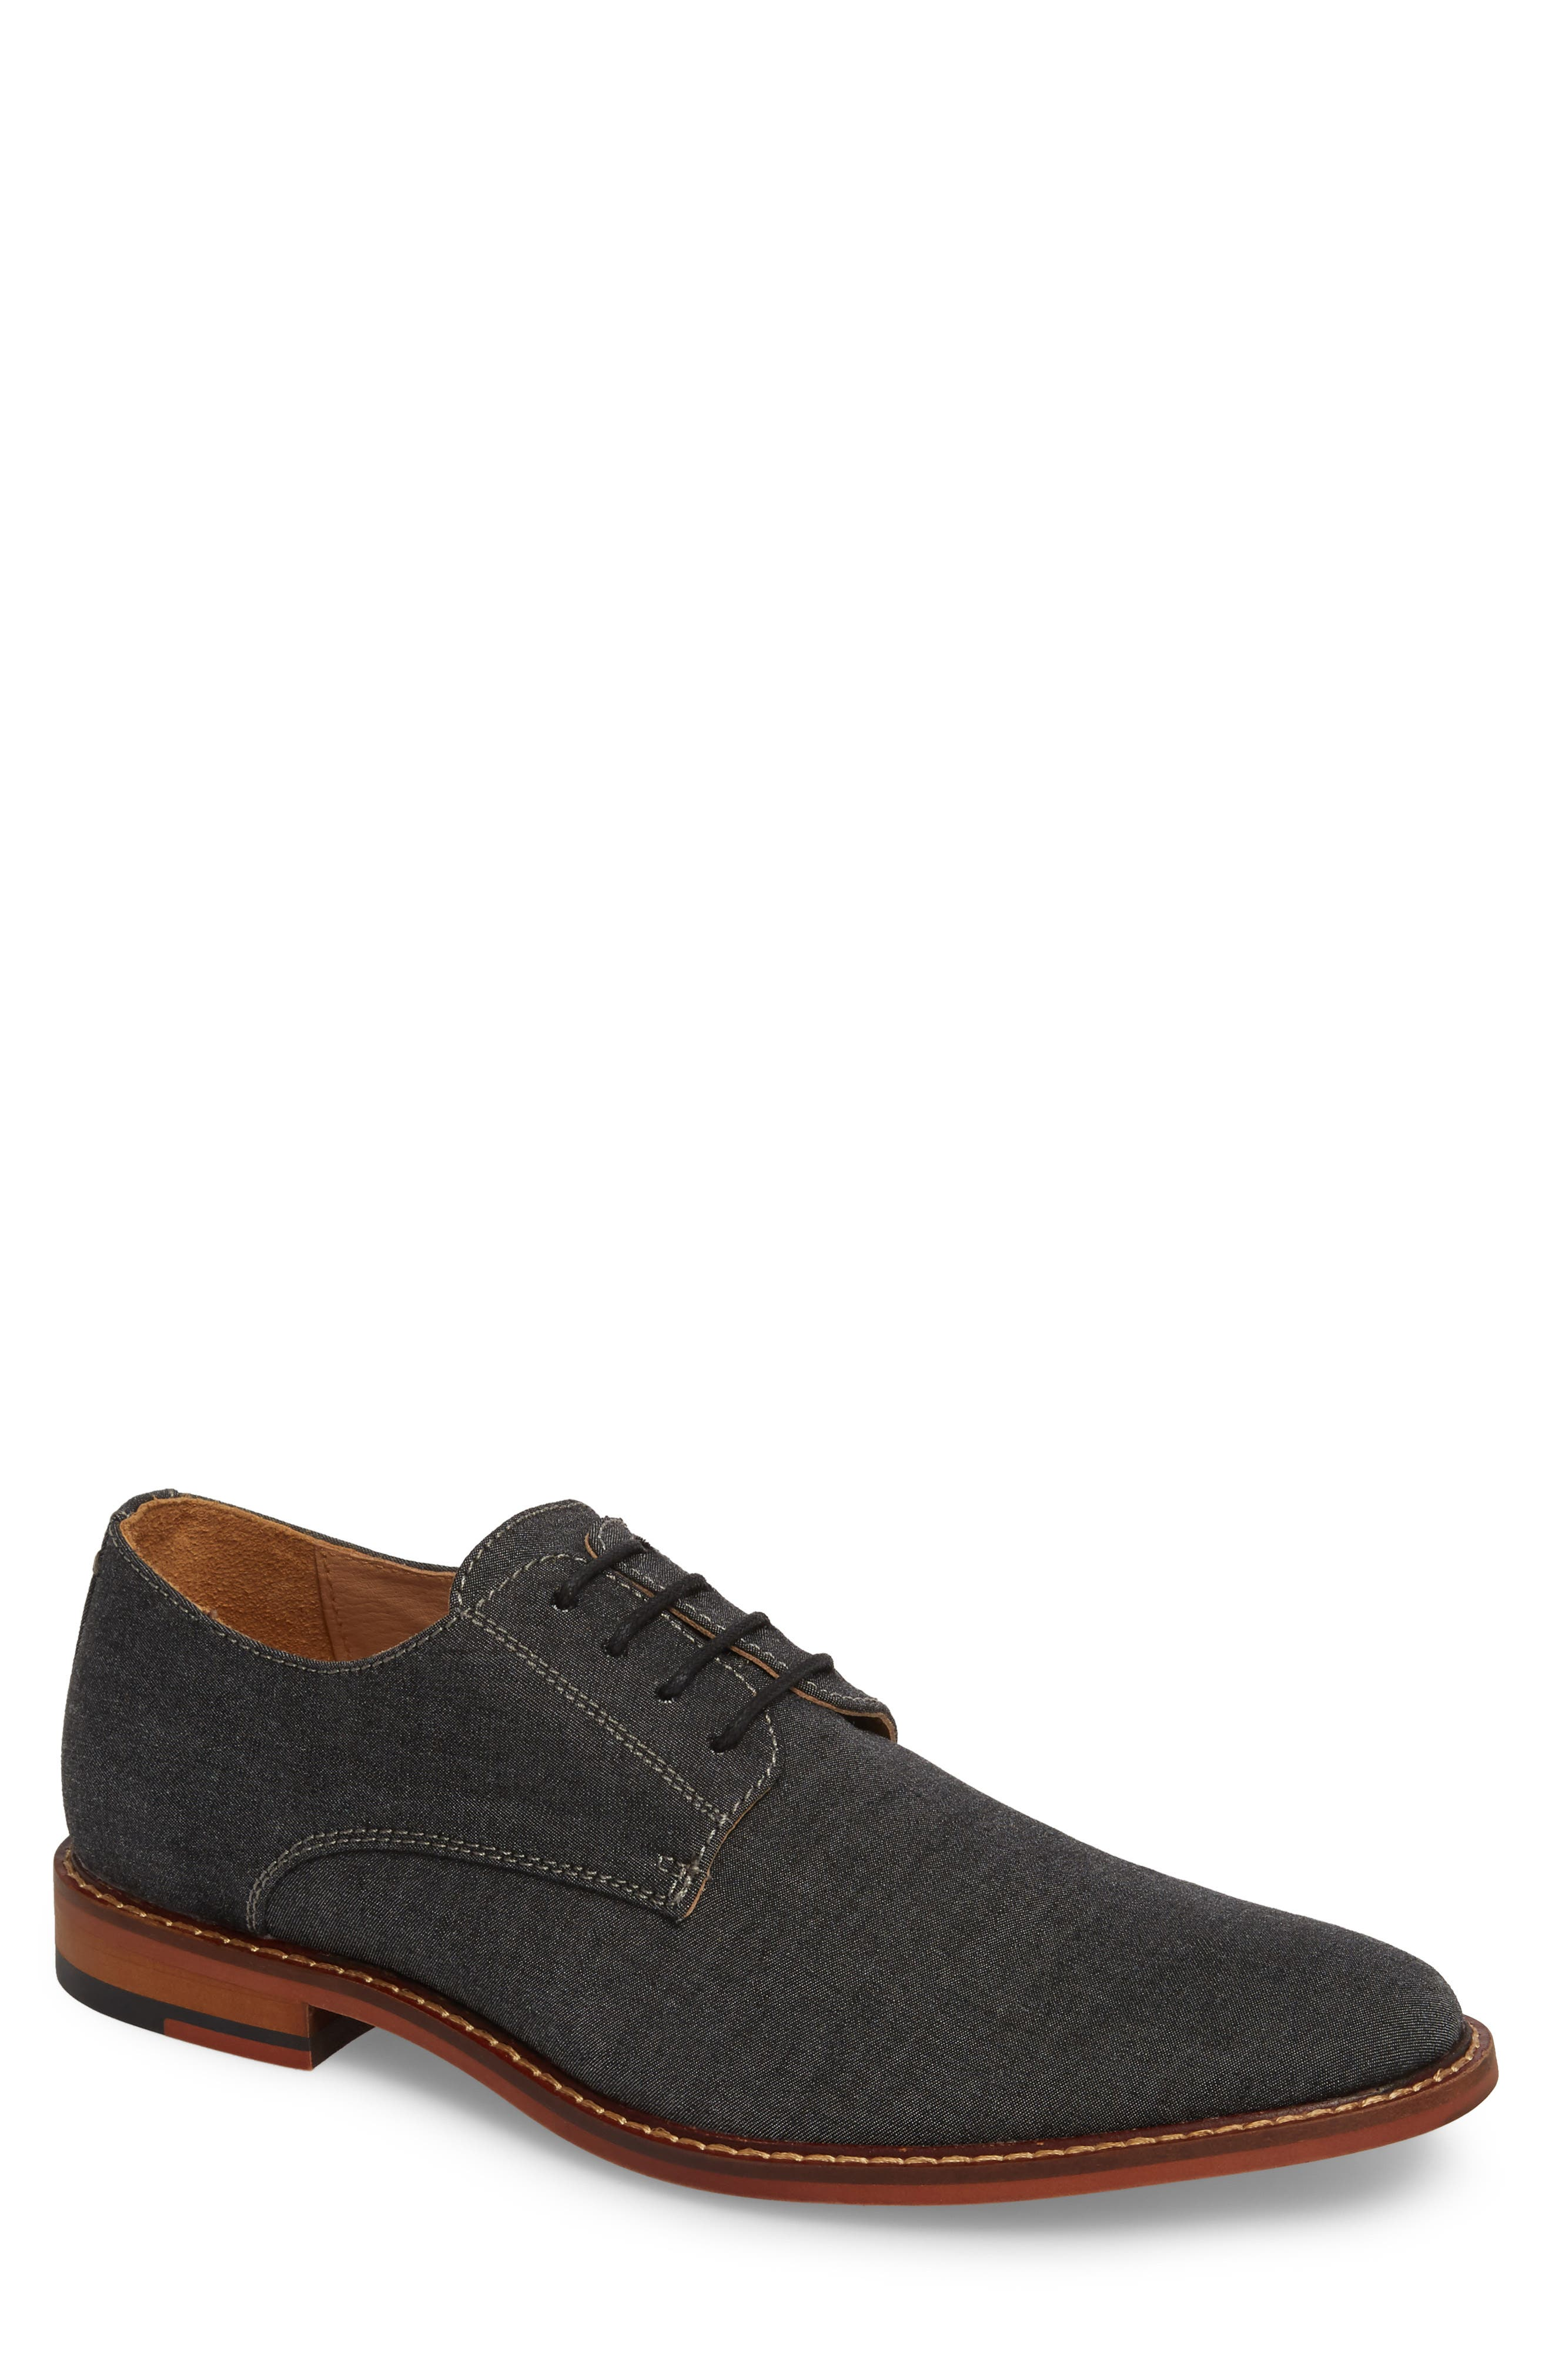 Pinacle Plain Toe Derby,                         Main,                         color, 030